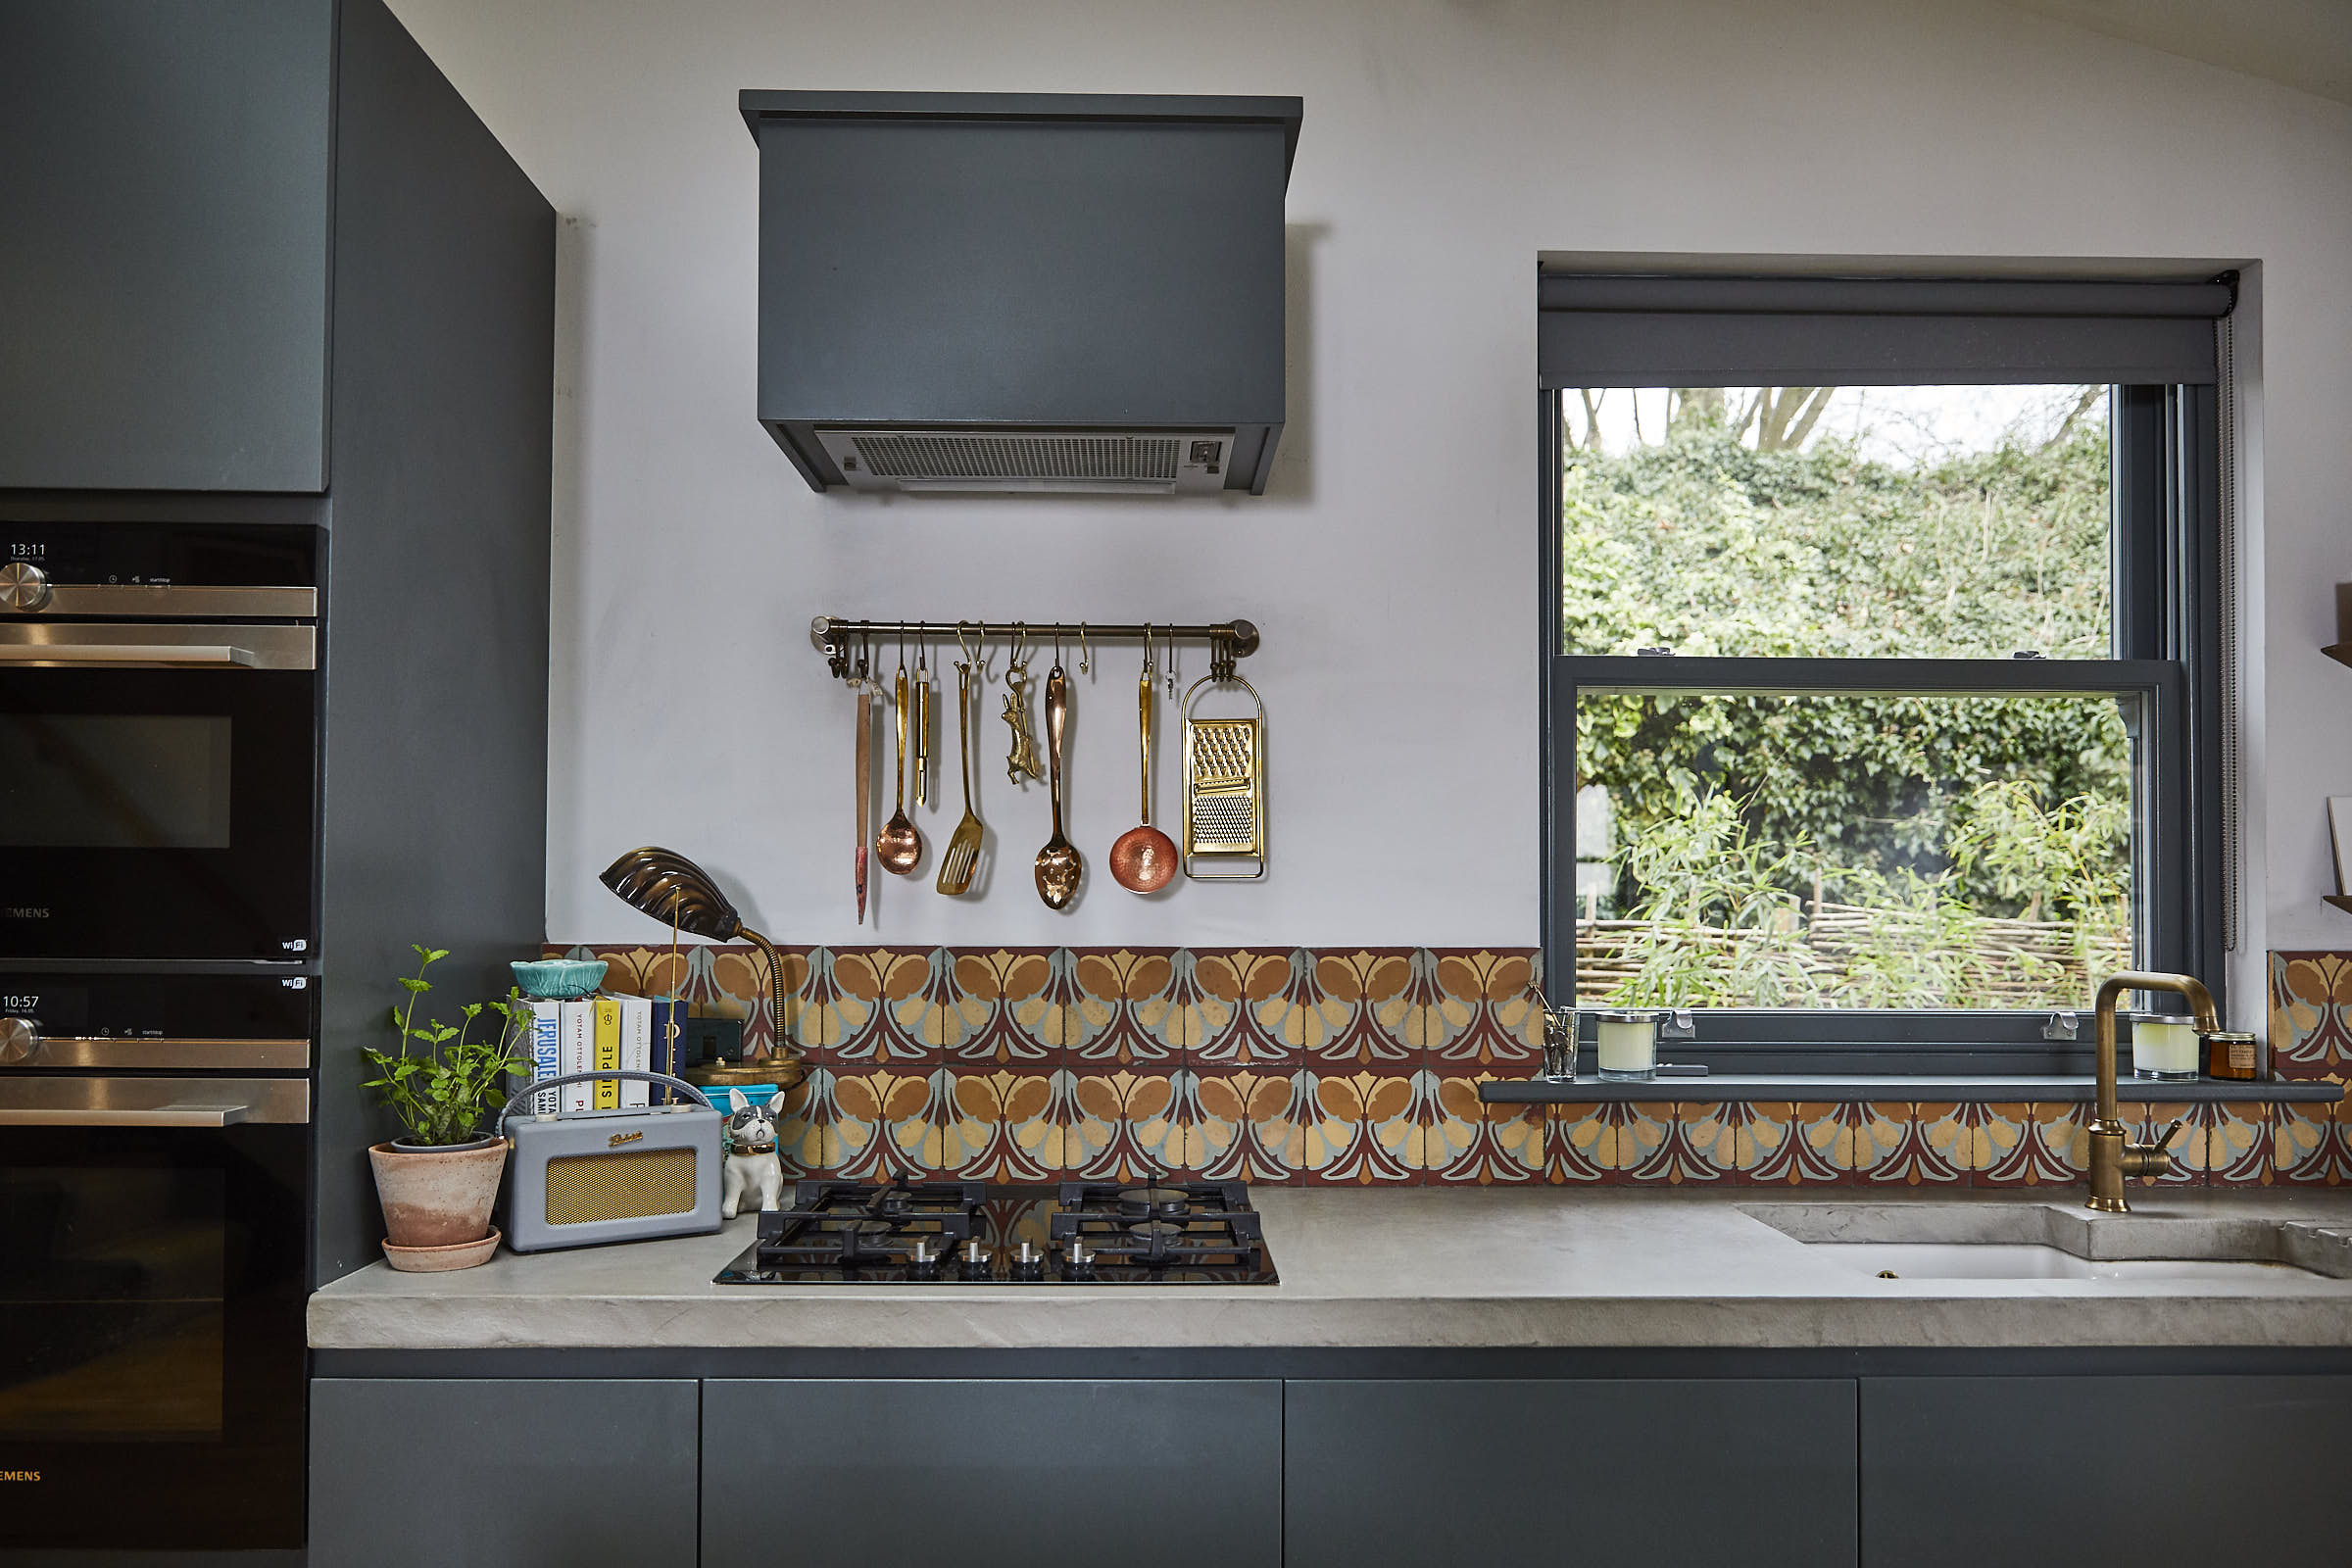 Copper kitchen utensils sit under painted kitchen extractor with tiled backsplash